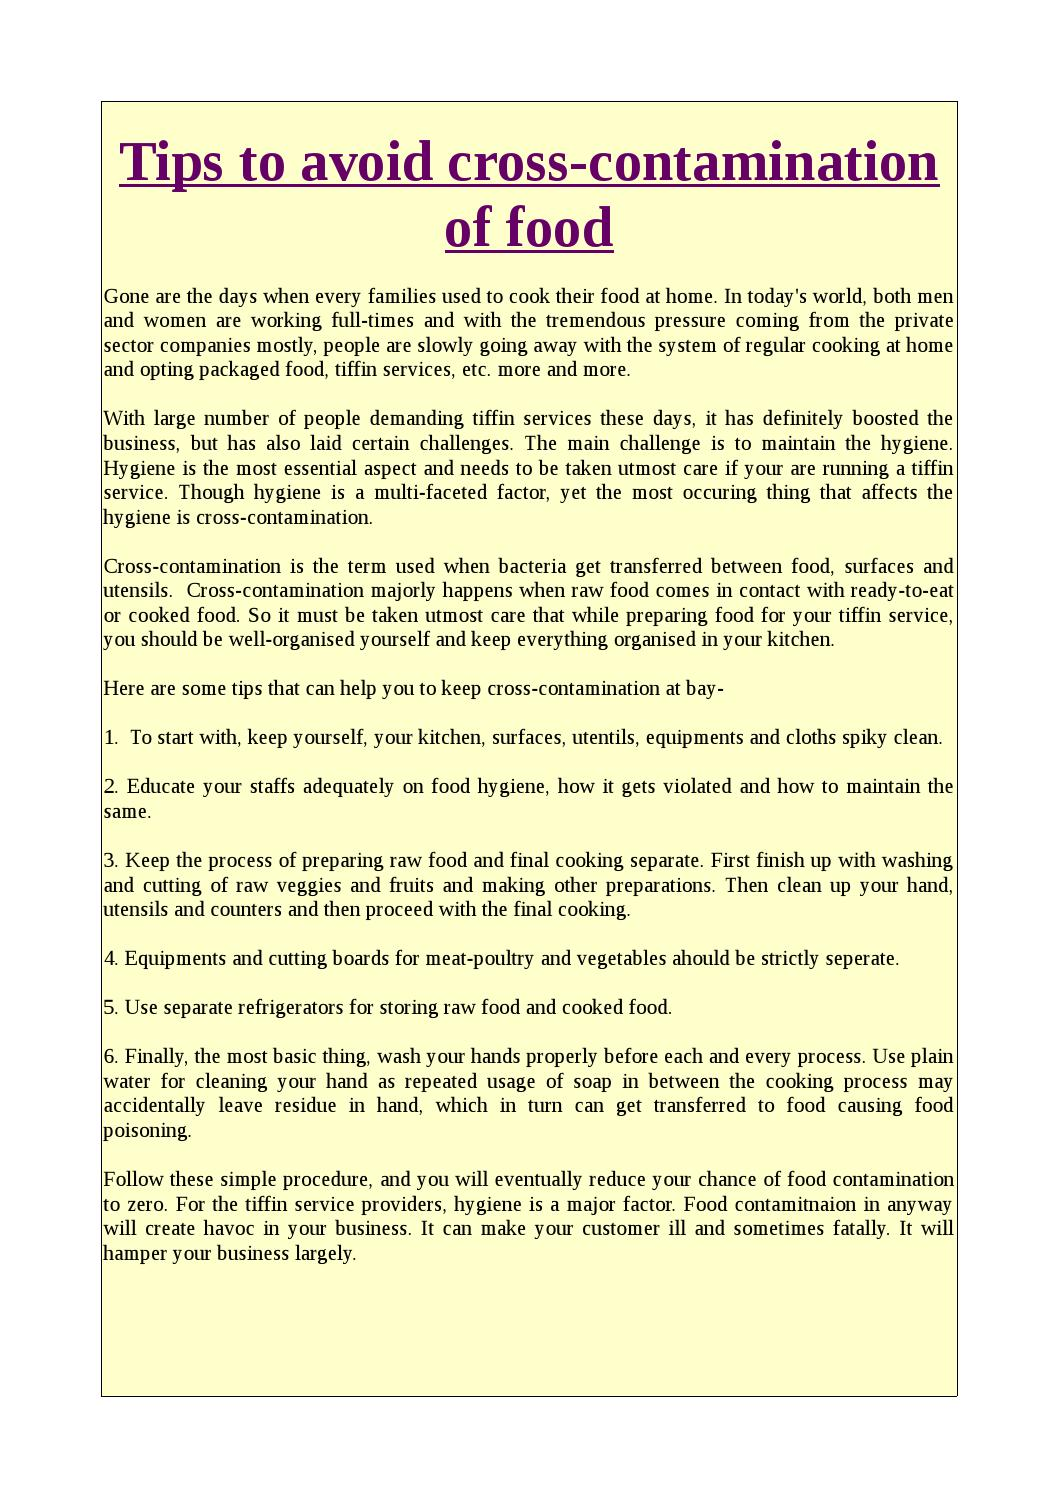 Tips To Avoid Cross Contamination Of Food By Chatakdaar